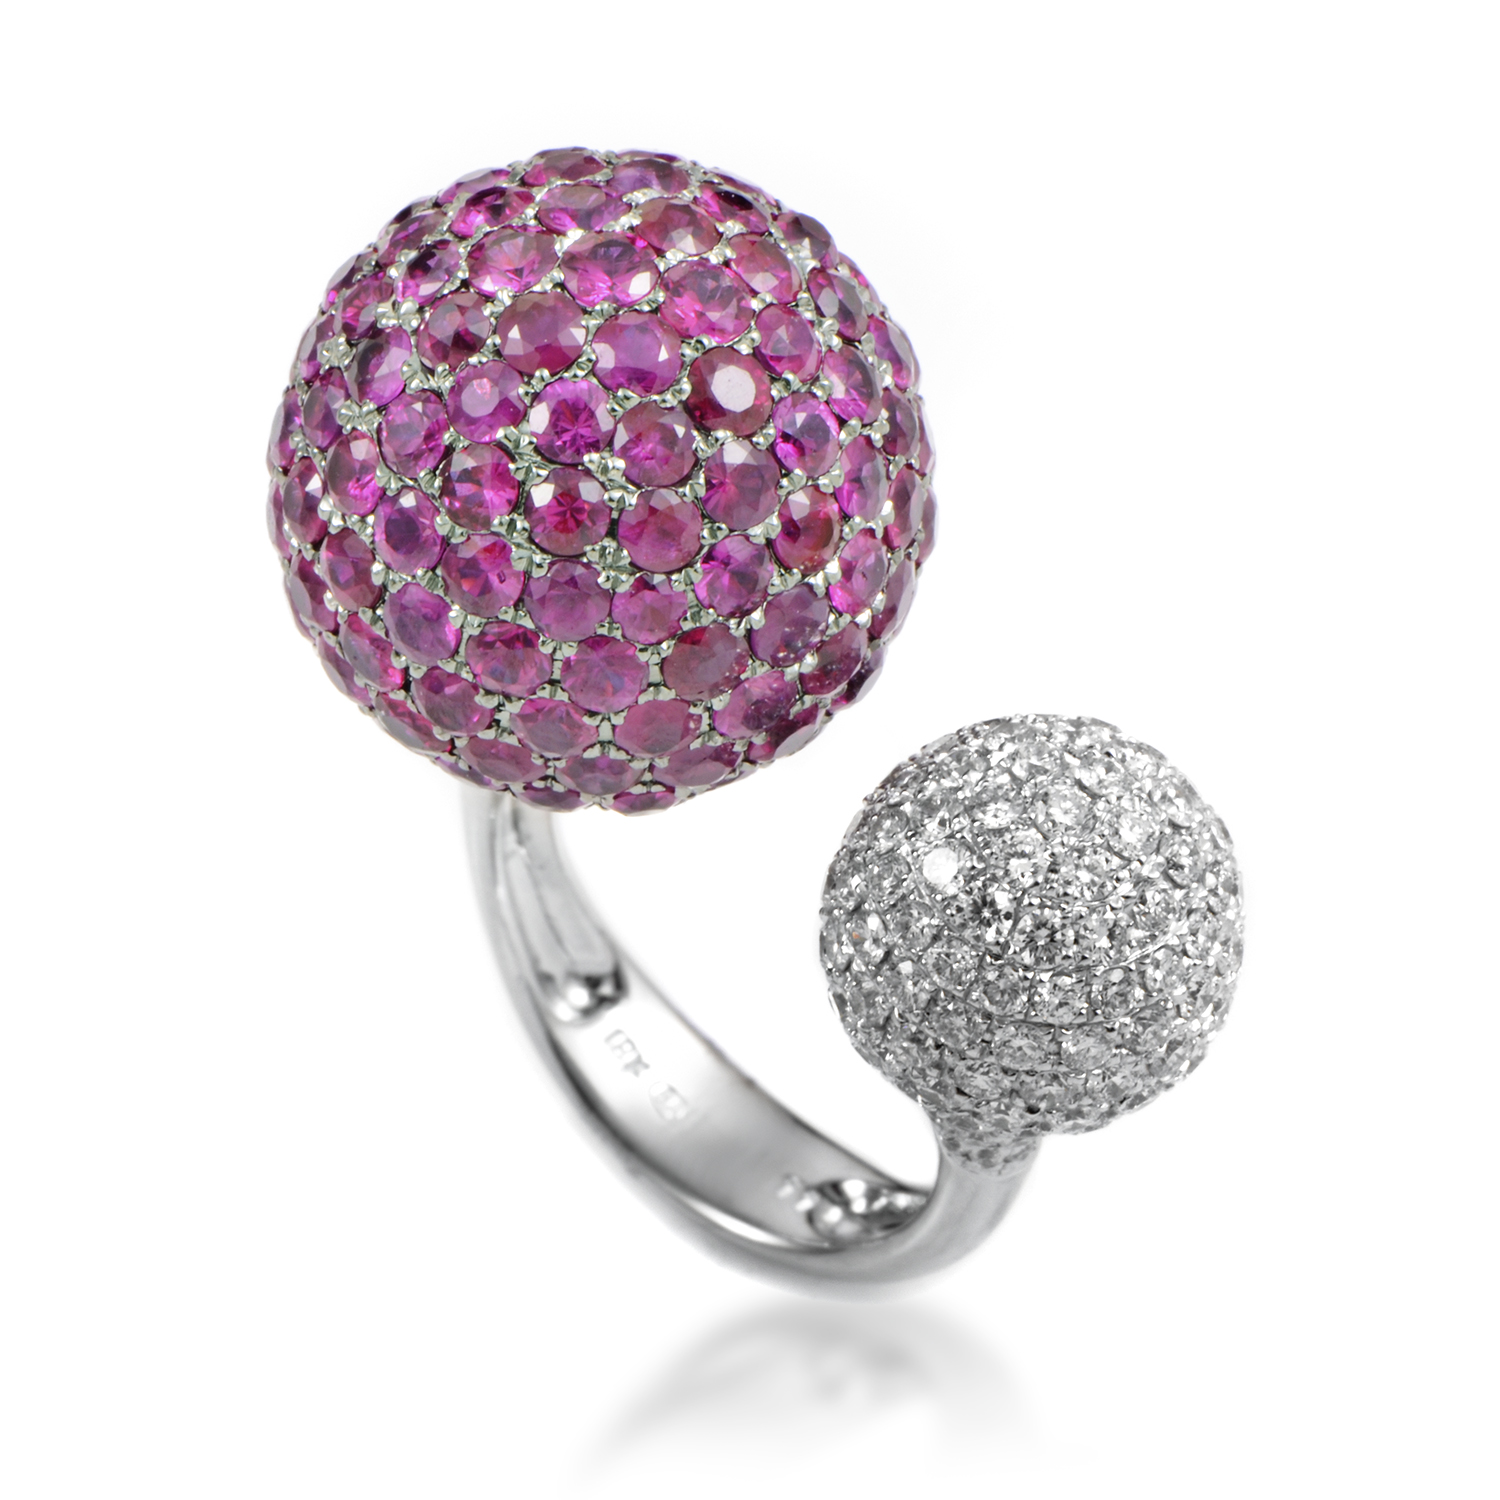 Women's 18K White Gold Diamond & Ruby Spheres Ring KOUR861RKLBZRU